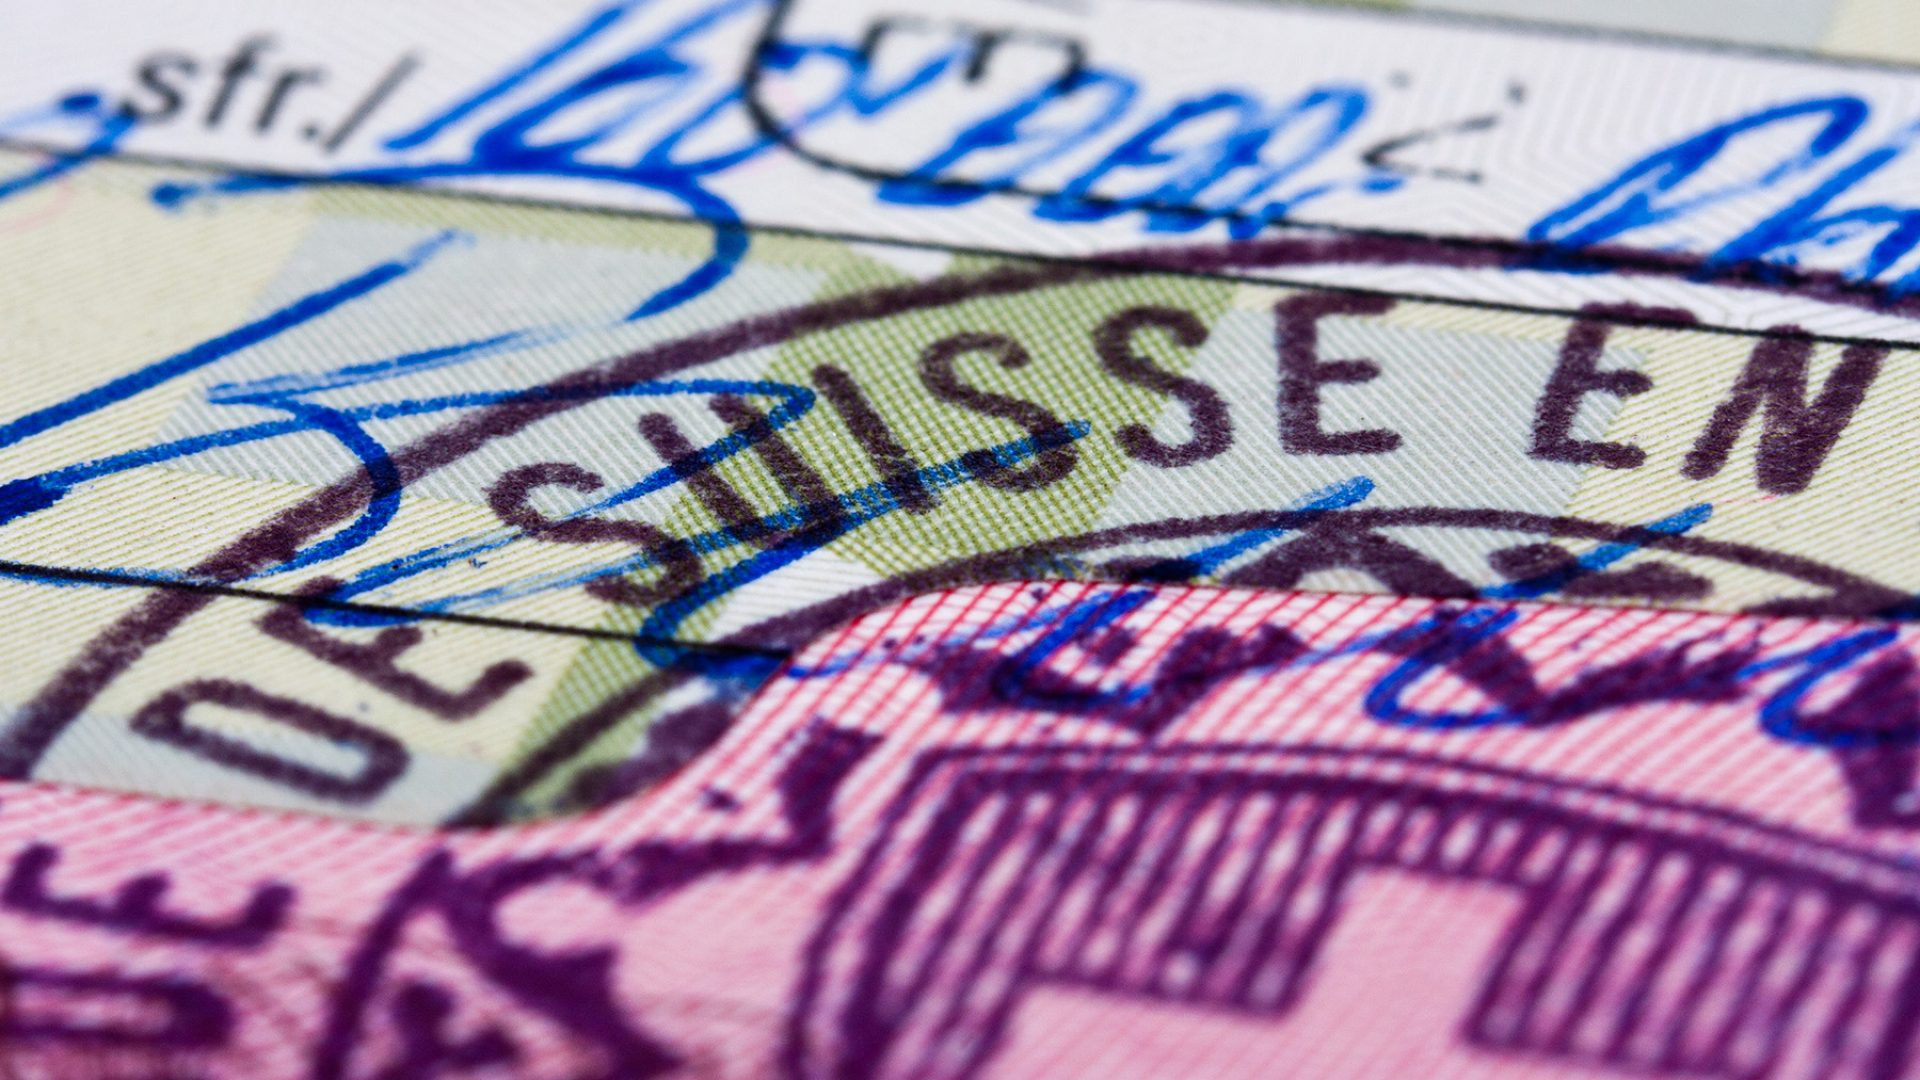 Visas and immigration in Switzerland